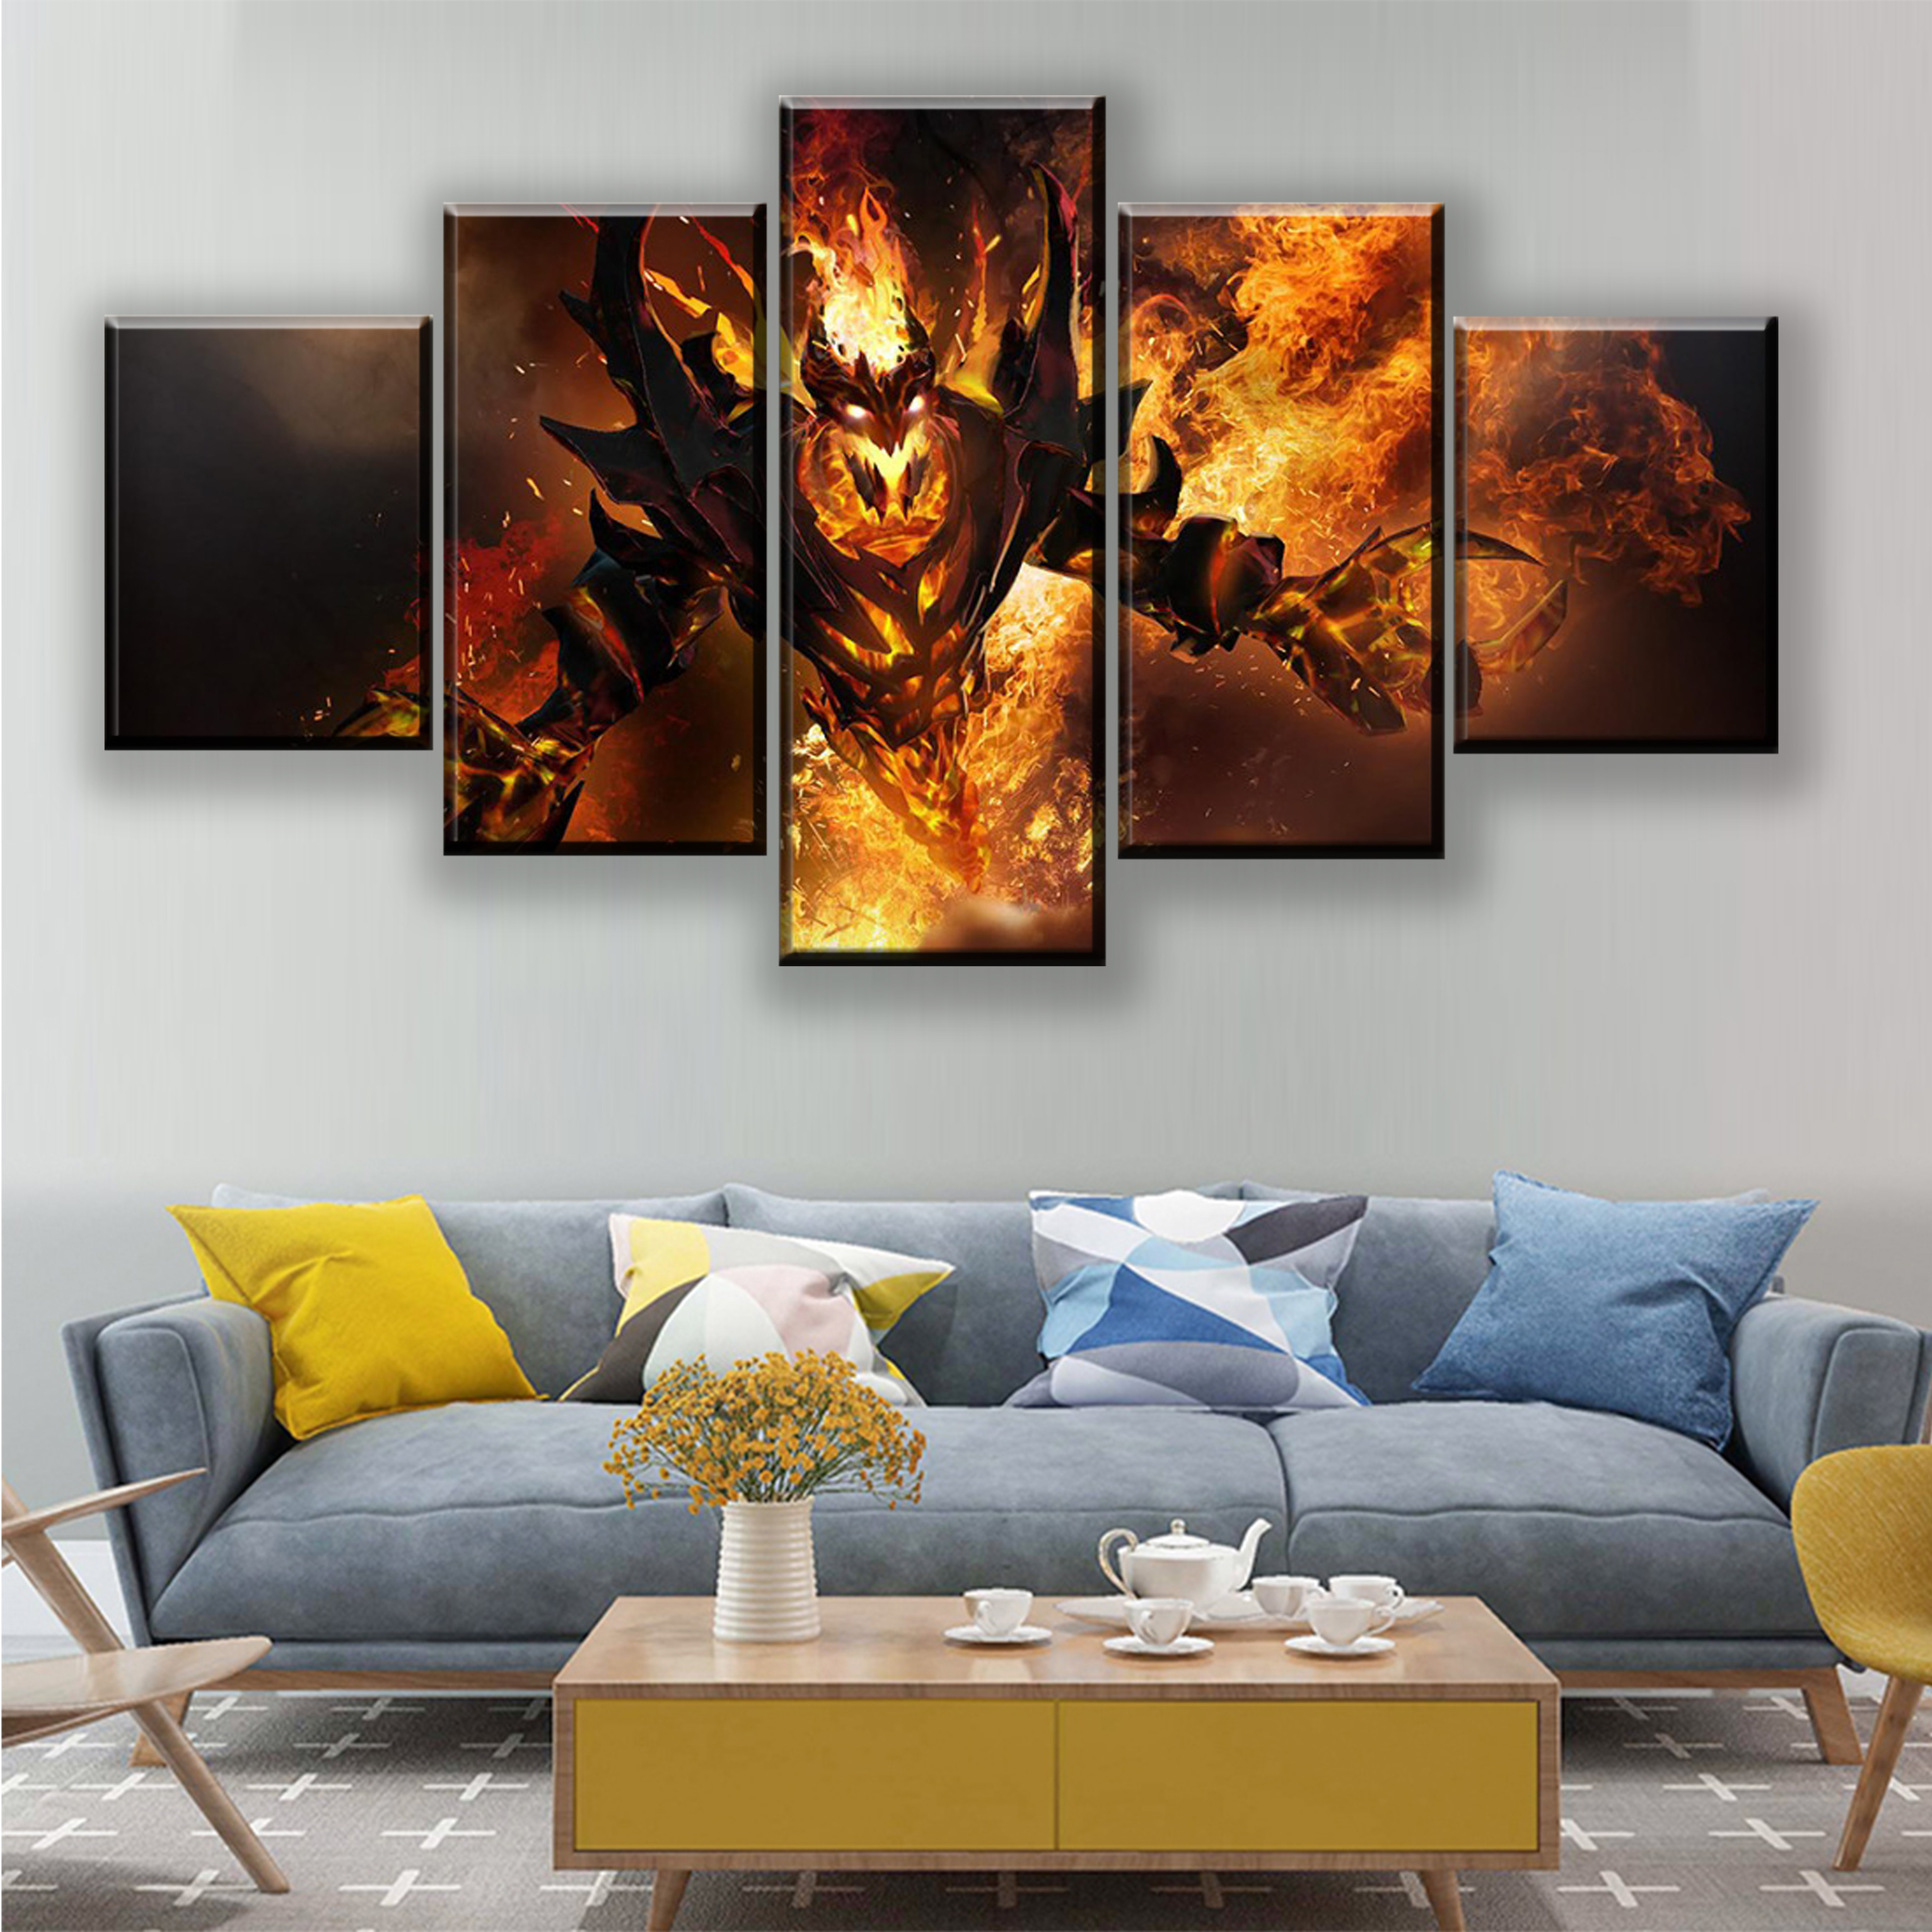 5 Pieces DotA 2 Fire Heroes Canvas Print Abstract Painting Game Poster Modern Wall Artwork Home Decorative Boys Room Unique Gift in Painting Calligraphy from Home Garden